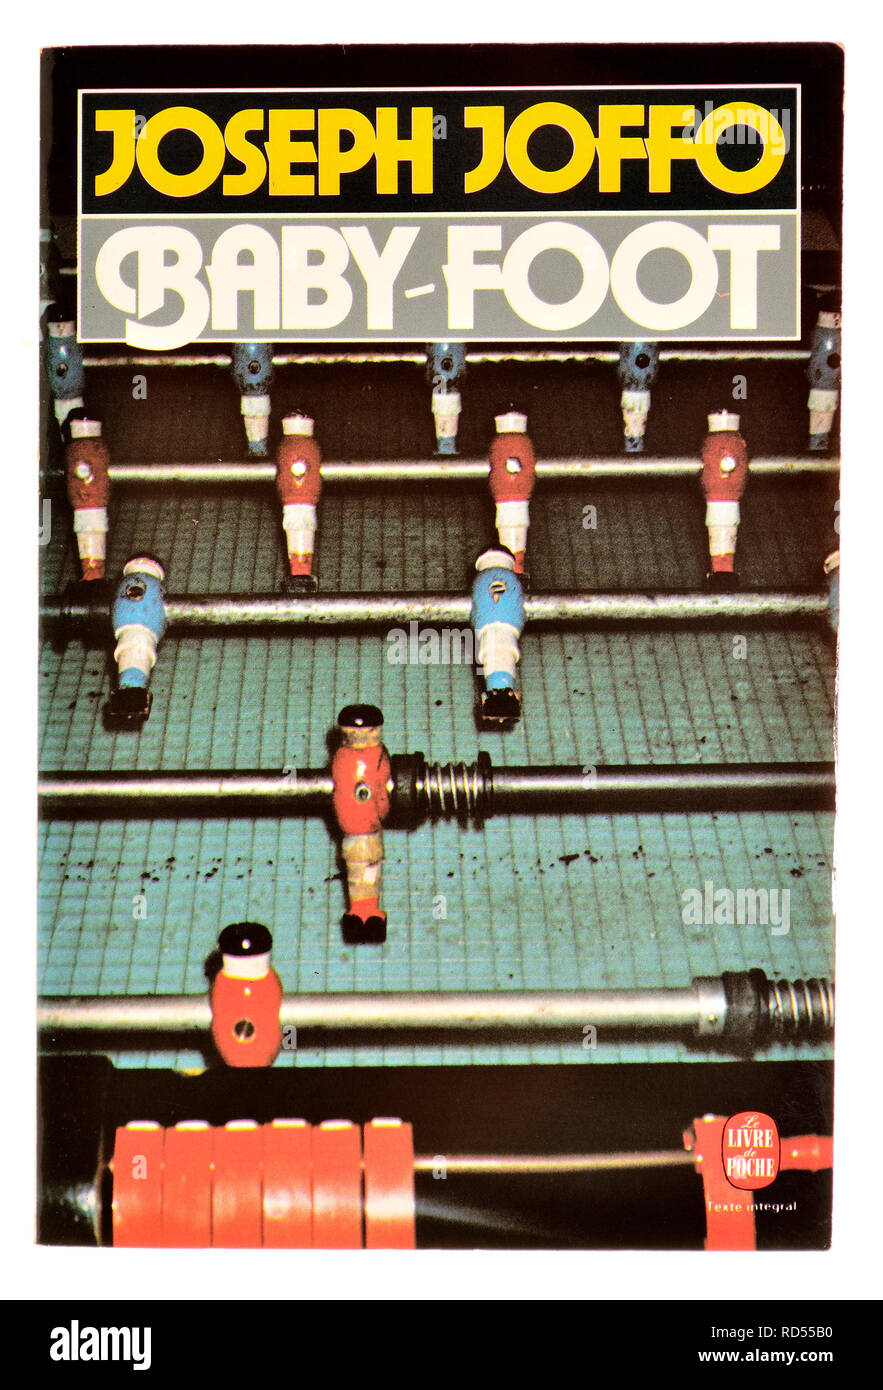 Baby-Foot (Joseph Joffo : 1977) 'Table Football' - French edition. Autobiographical novel about his early childhood - Stock Image